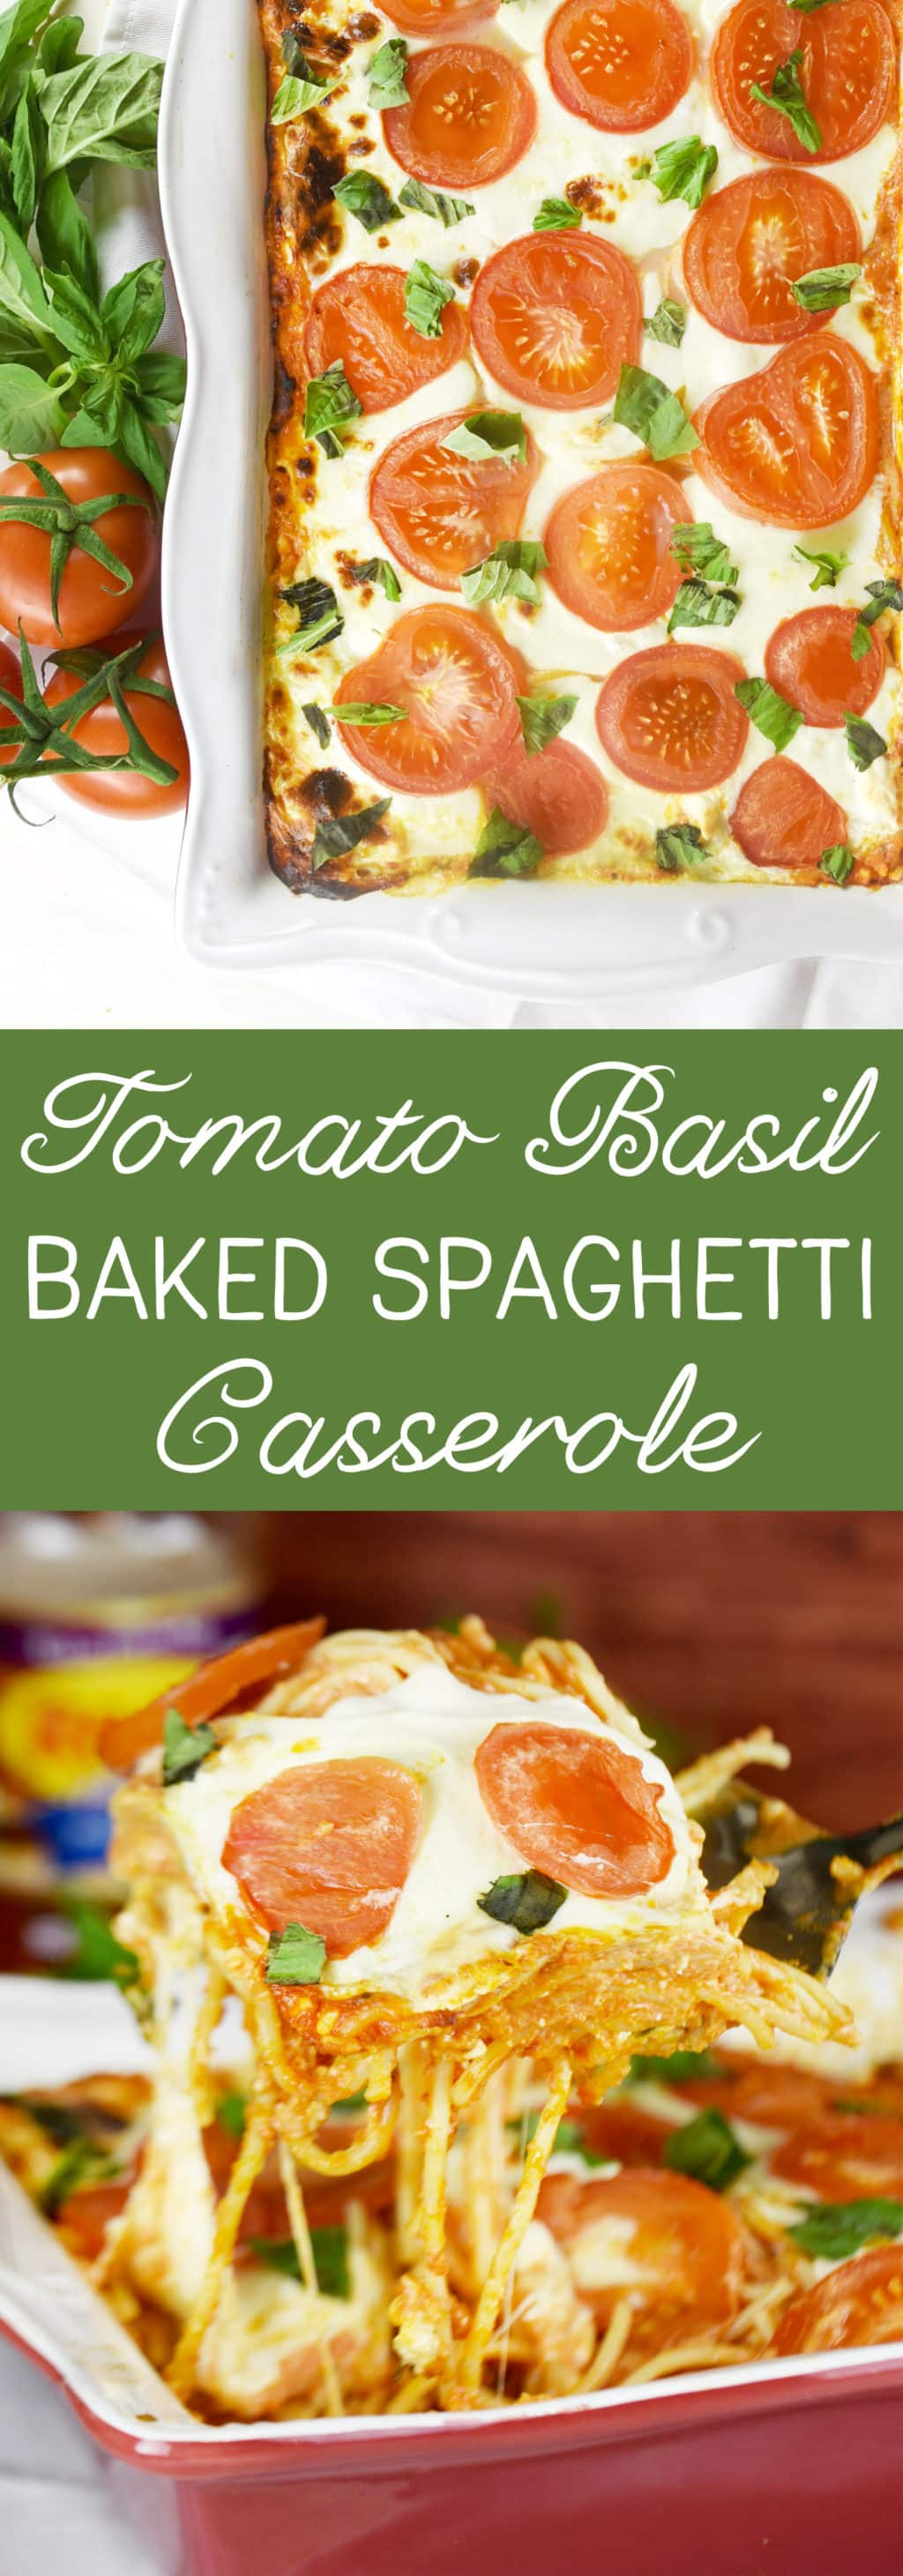 Tomato Basil Baked Spaghetti Casserole. Delicious and creamy with the fresh taste of tomatoes & basil!